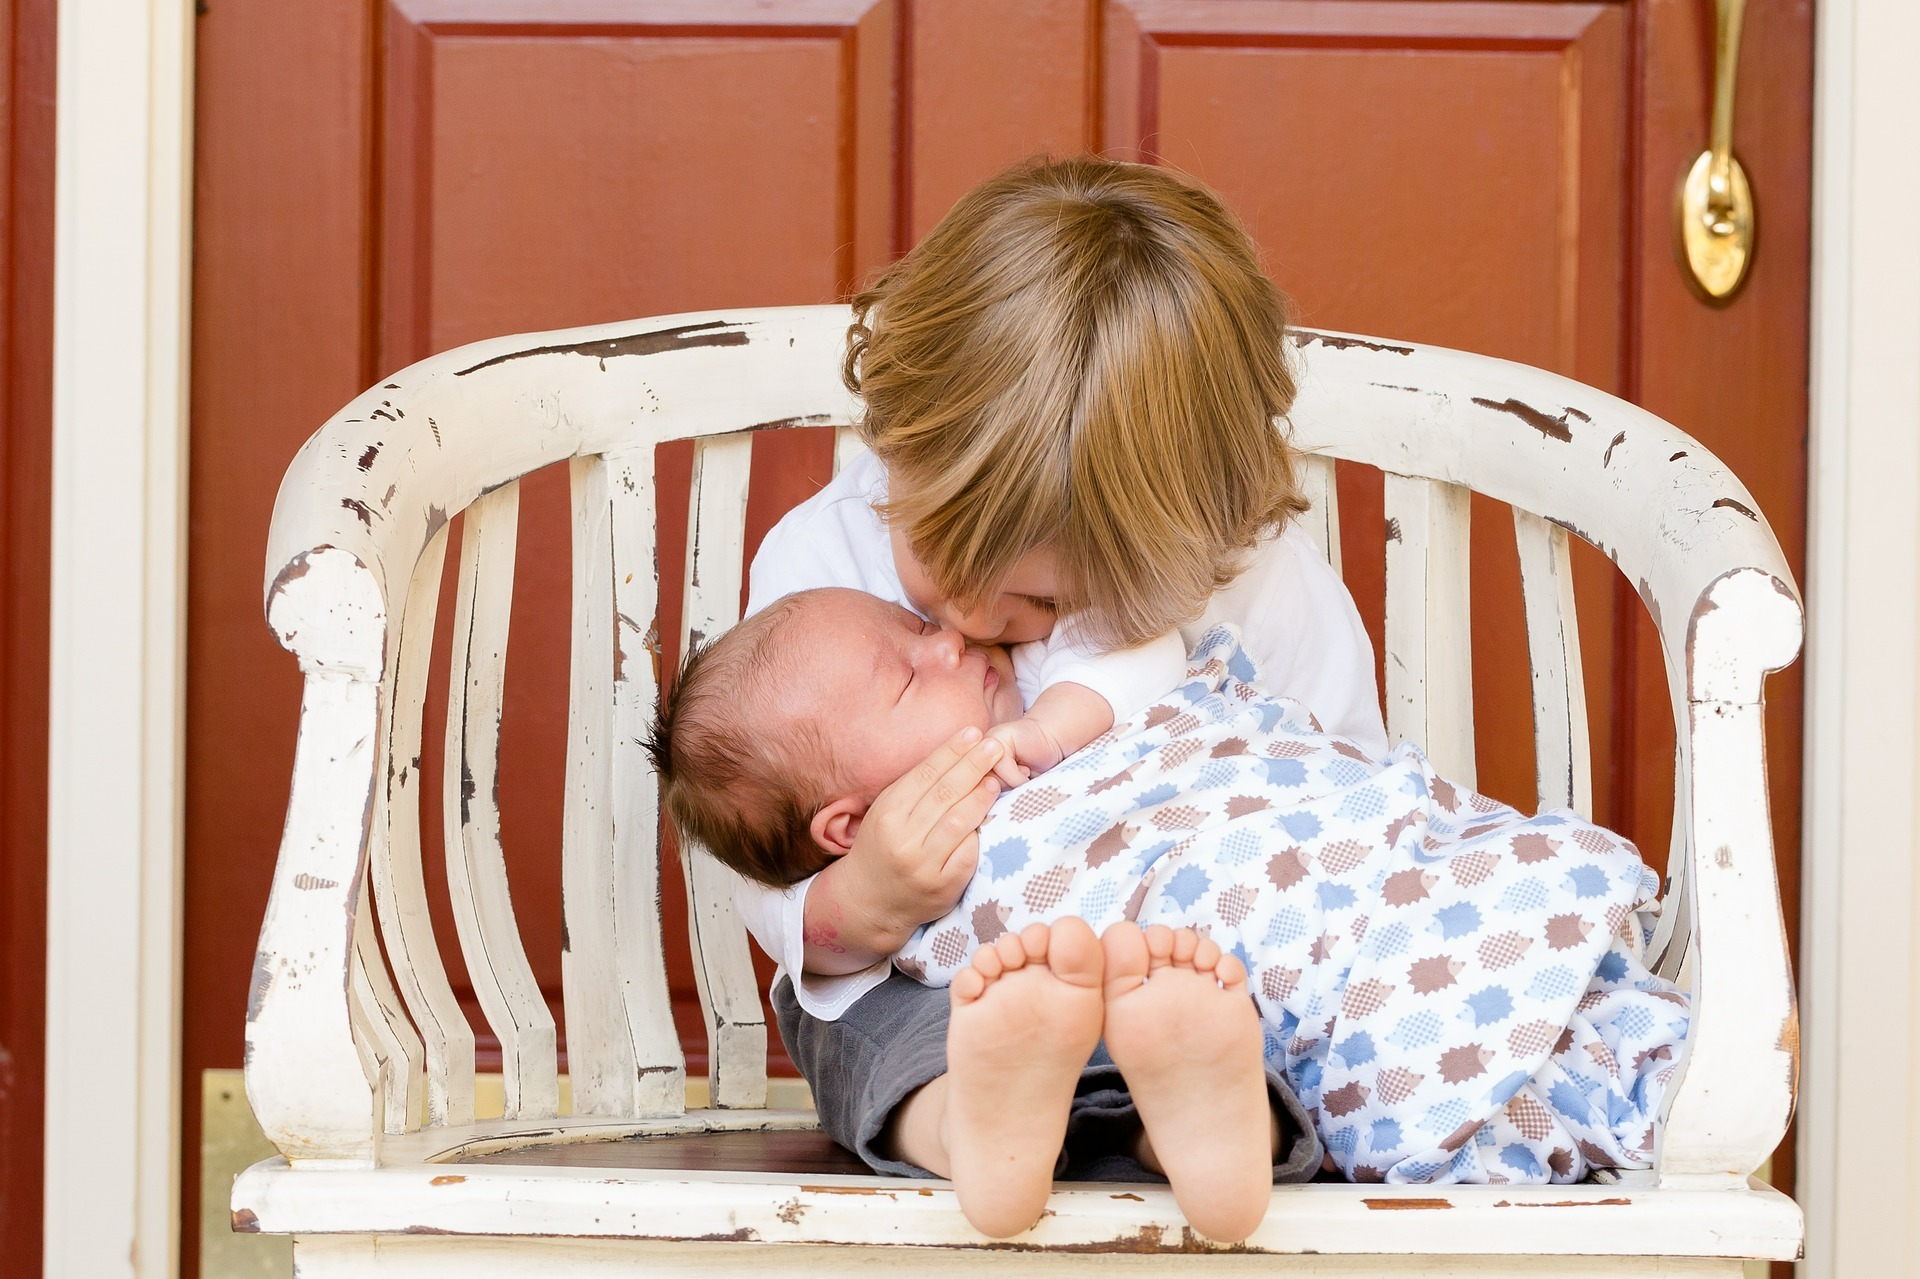 Preparing your toddler for a sibling - By Megan Kelly